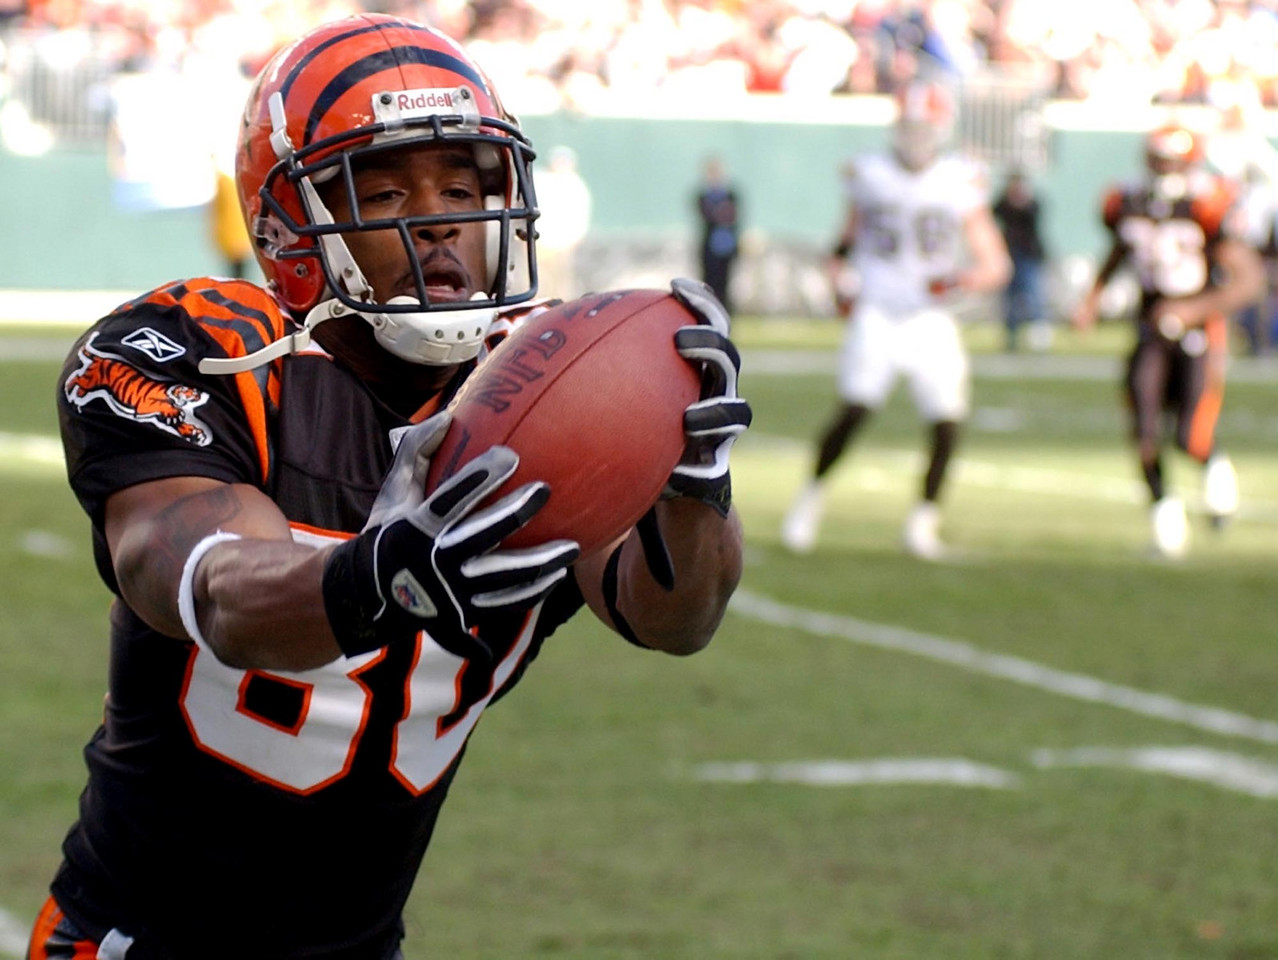 Cincinnati Bengals wide receiver Peter Warrick catches a pass near the sidelines in the first half at Paul Brown Stadium Sunday, 12/28/03. The reception was challenged by Cleveland, but the pass stood.